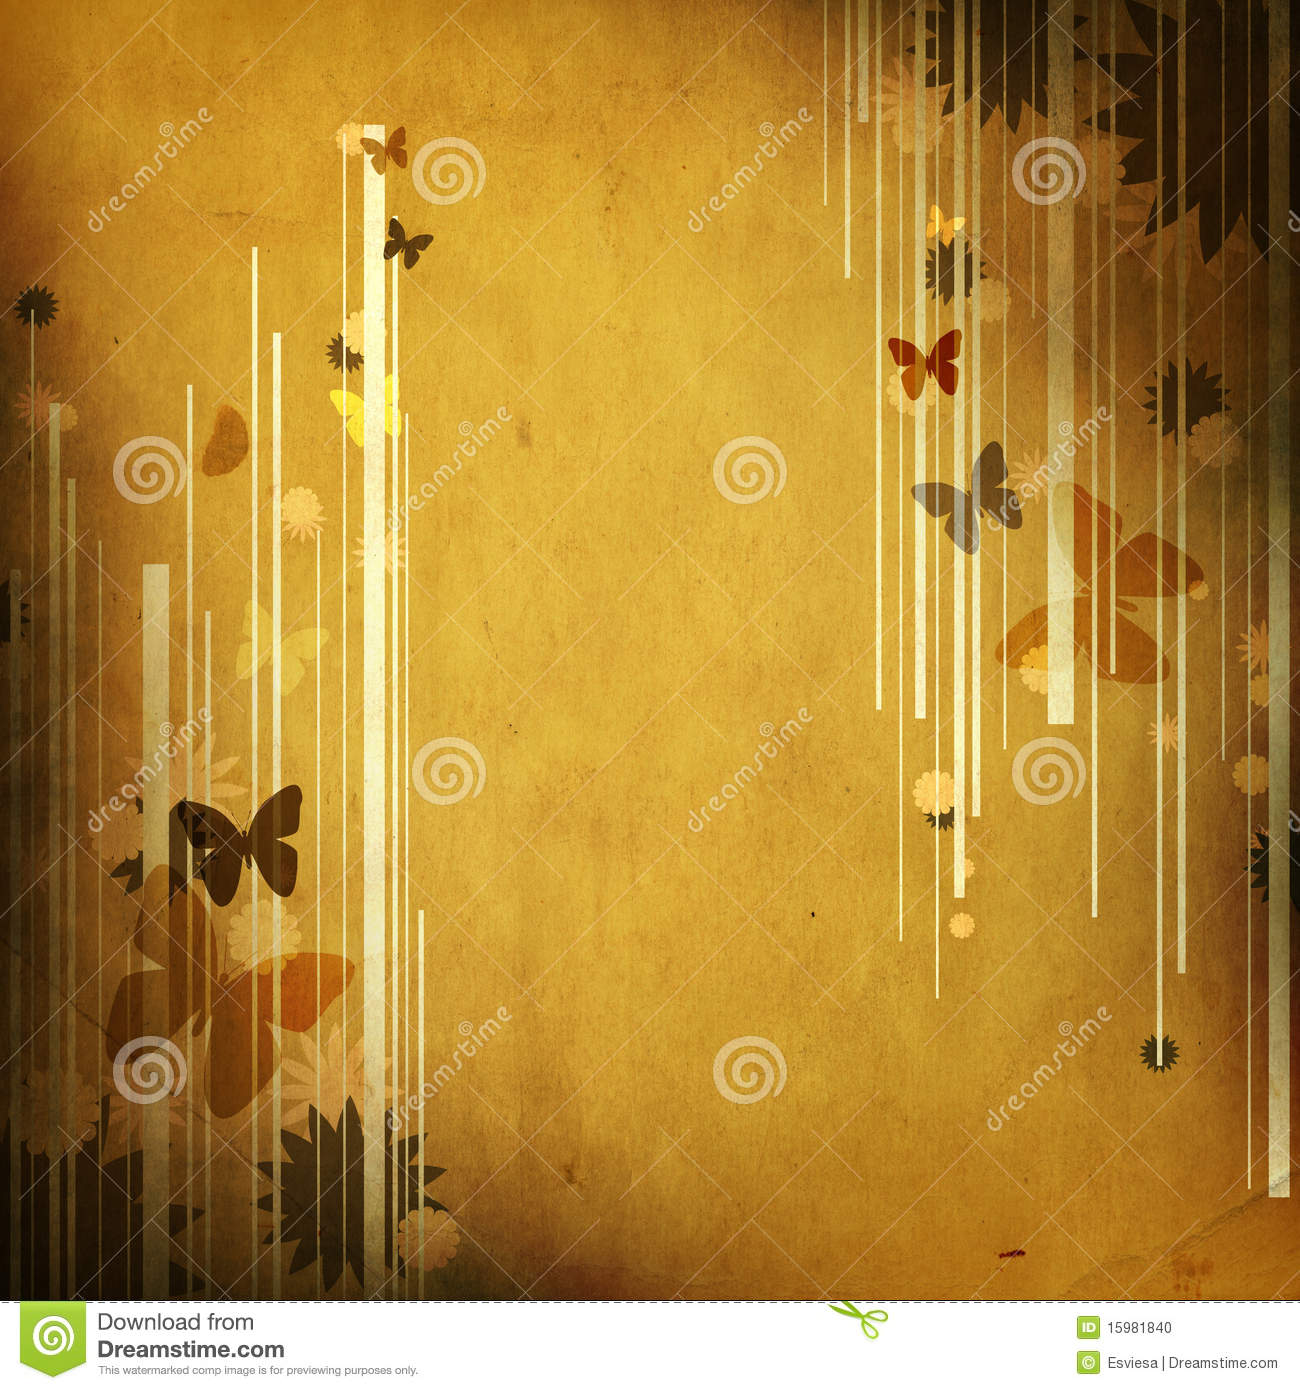 abstract background for marketing themes stock illustration